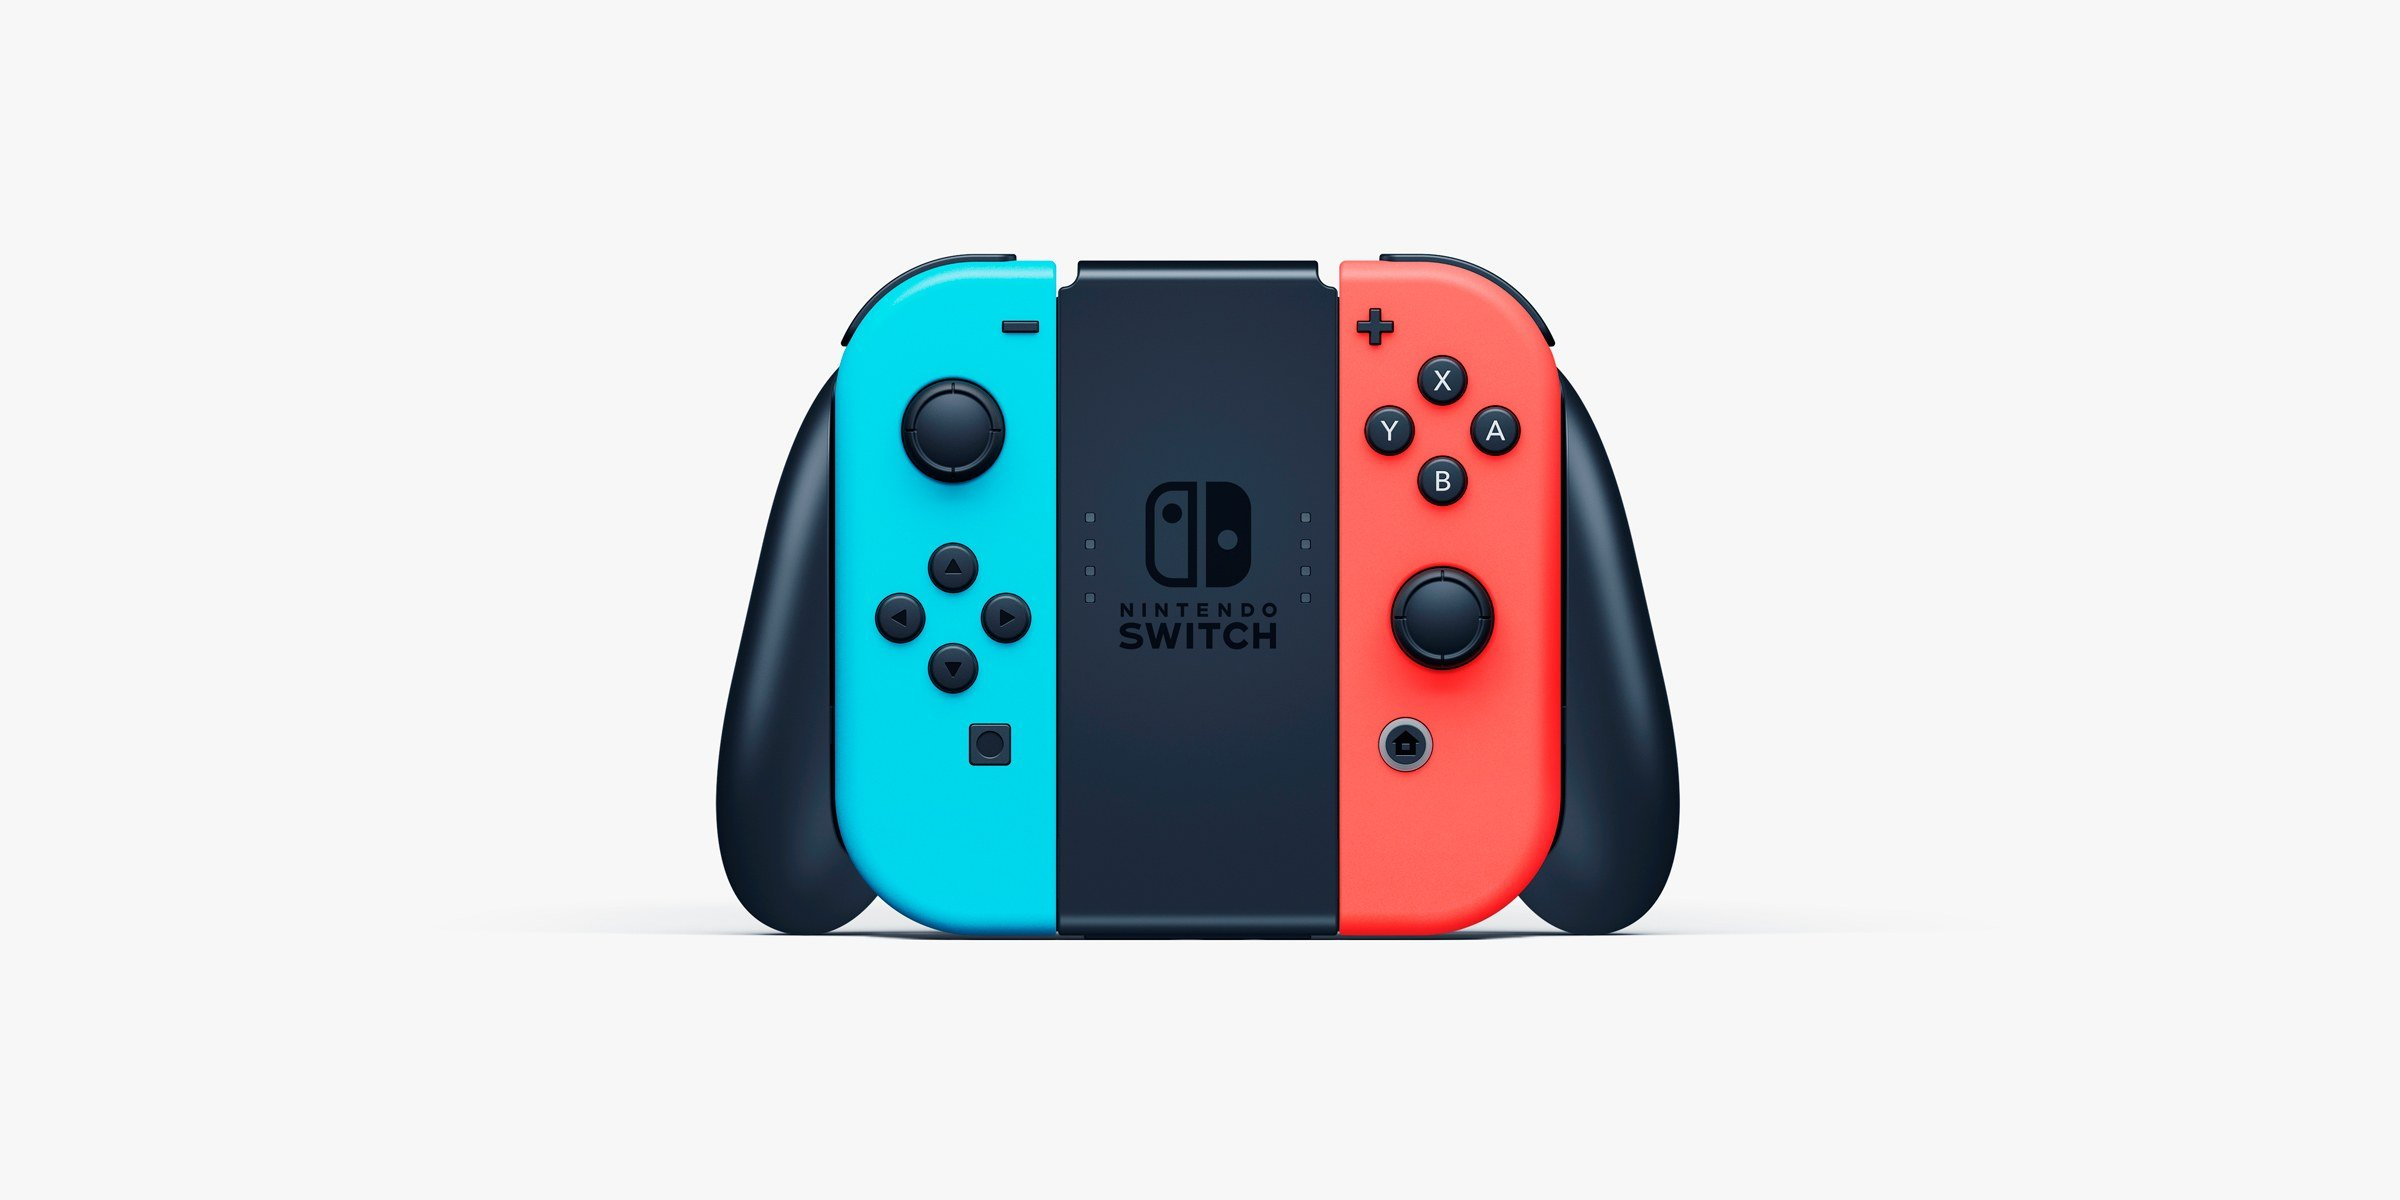 New Joy-Con color options coming in October